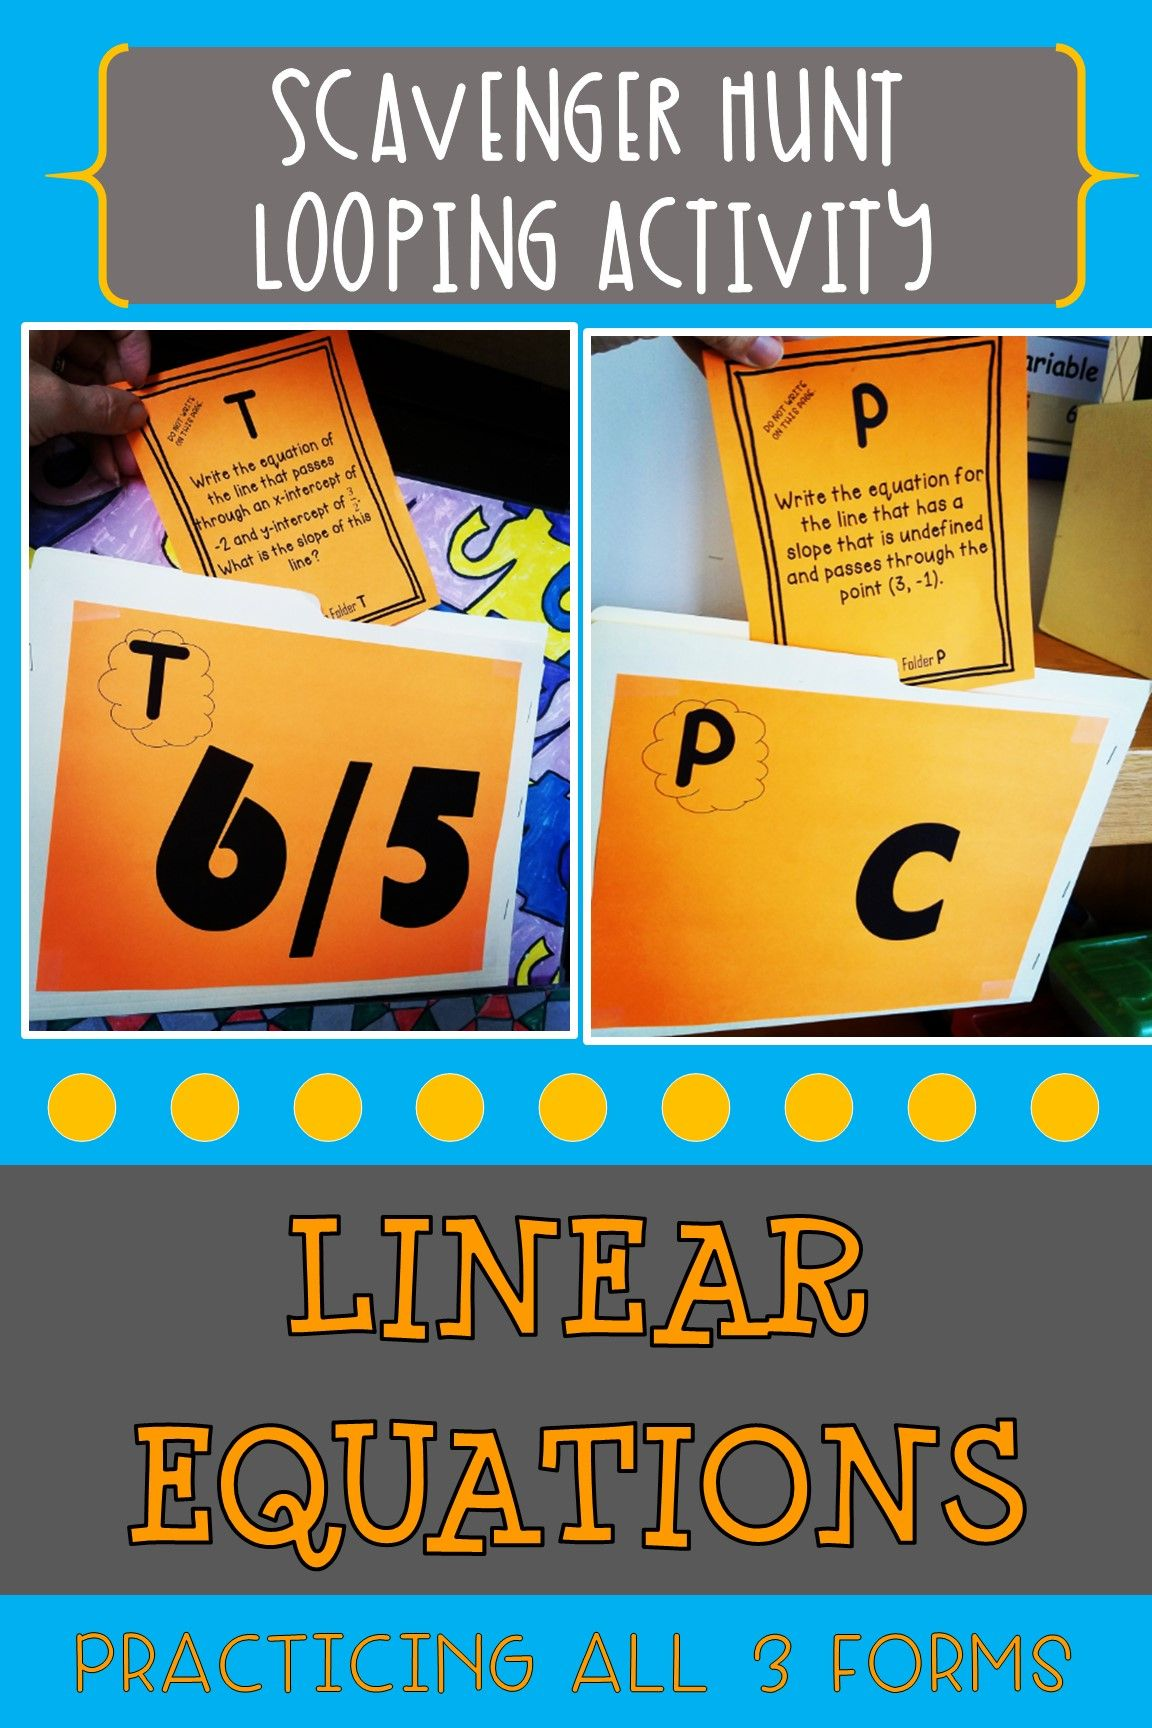 Linear Equations Scavenger Hunt Looping Activity